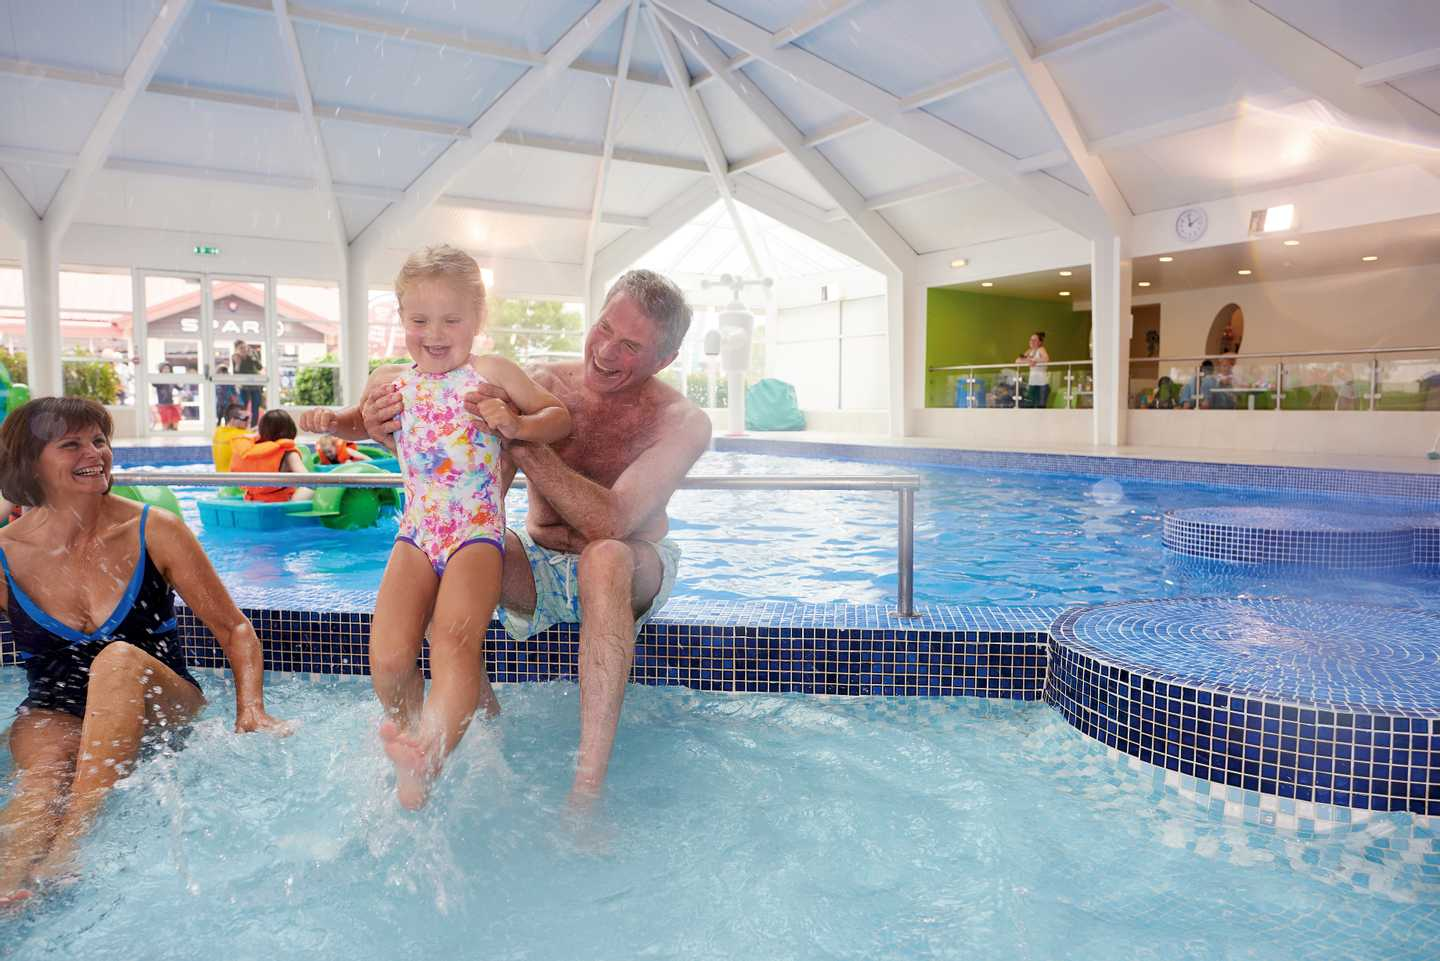 A family playing in the indoor pool